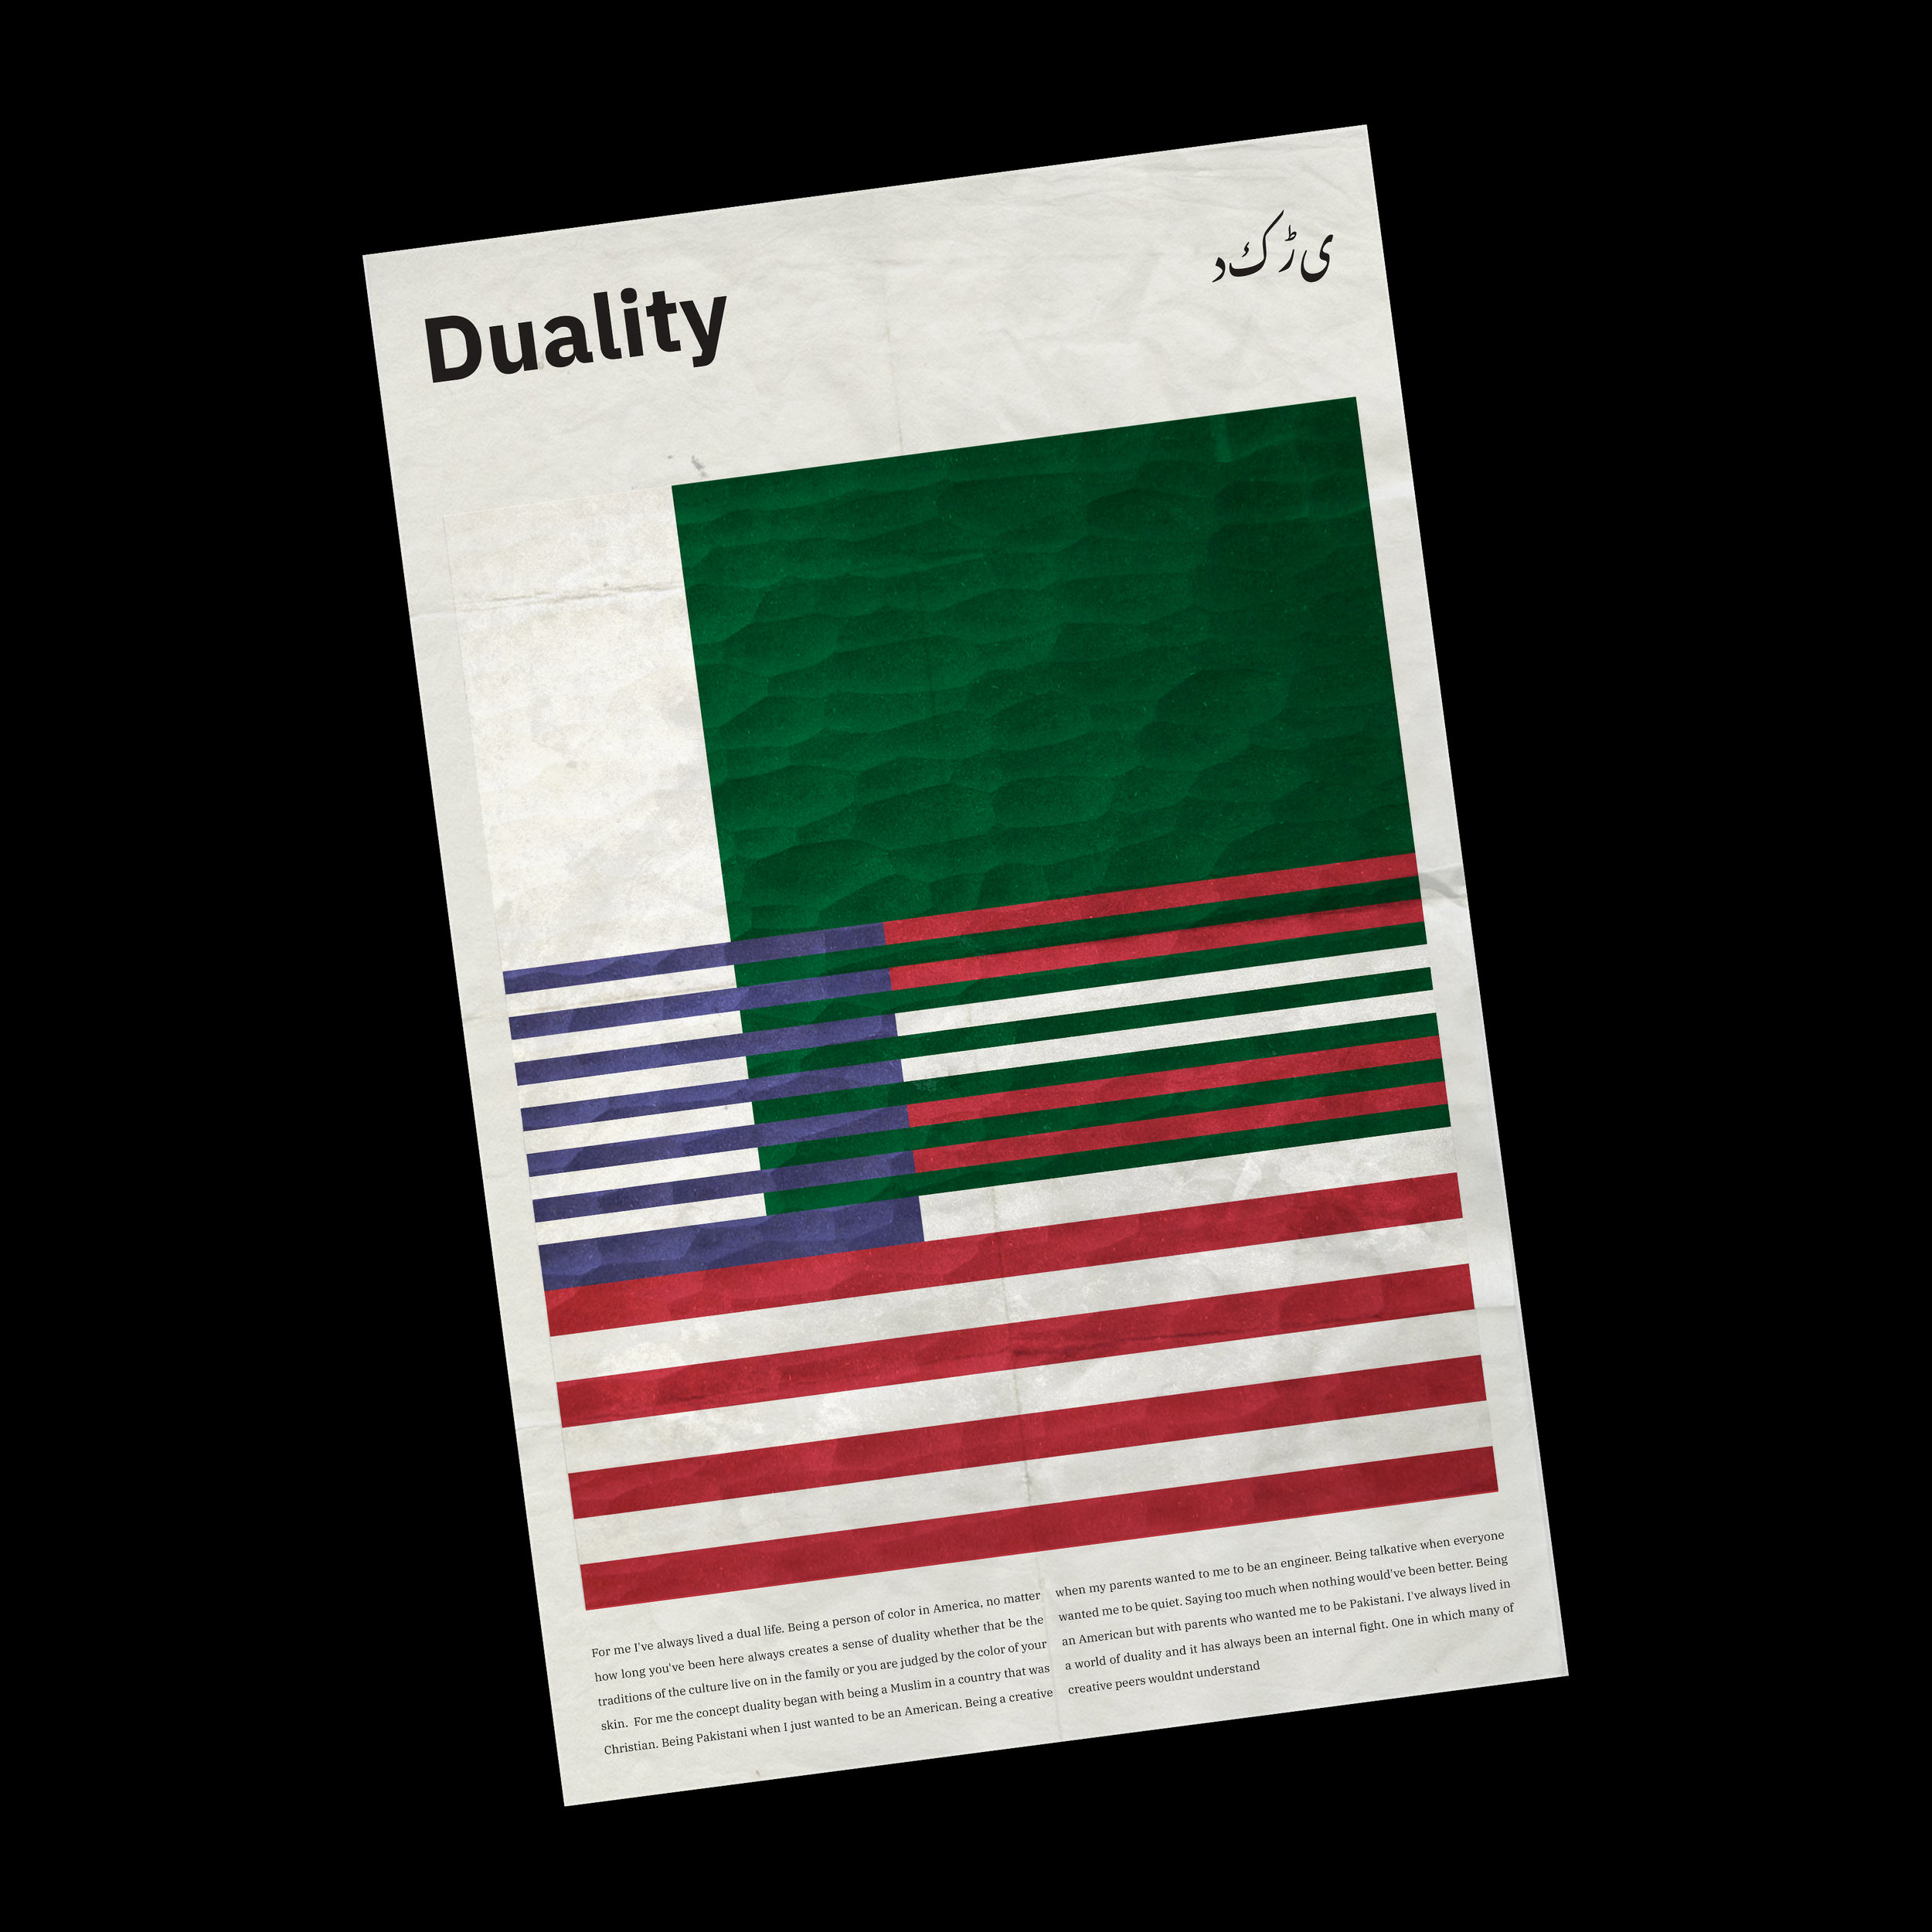 Duality_Poster.jpg